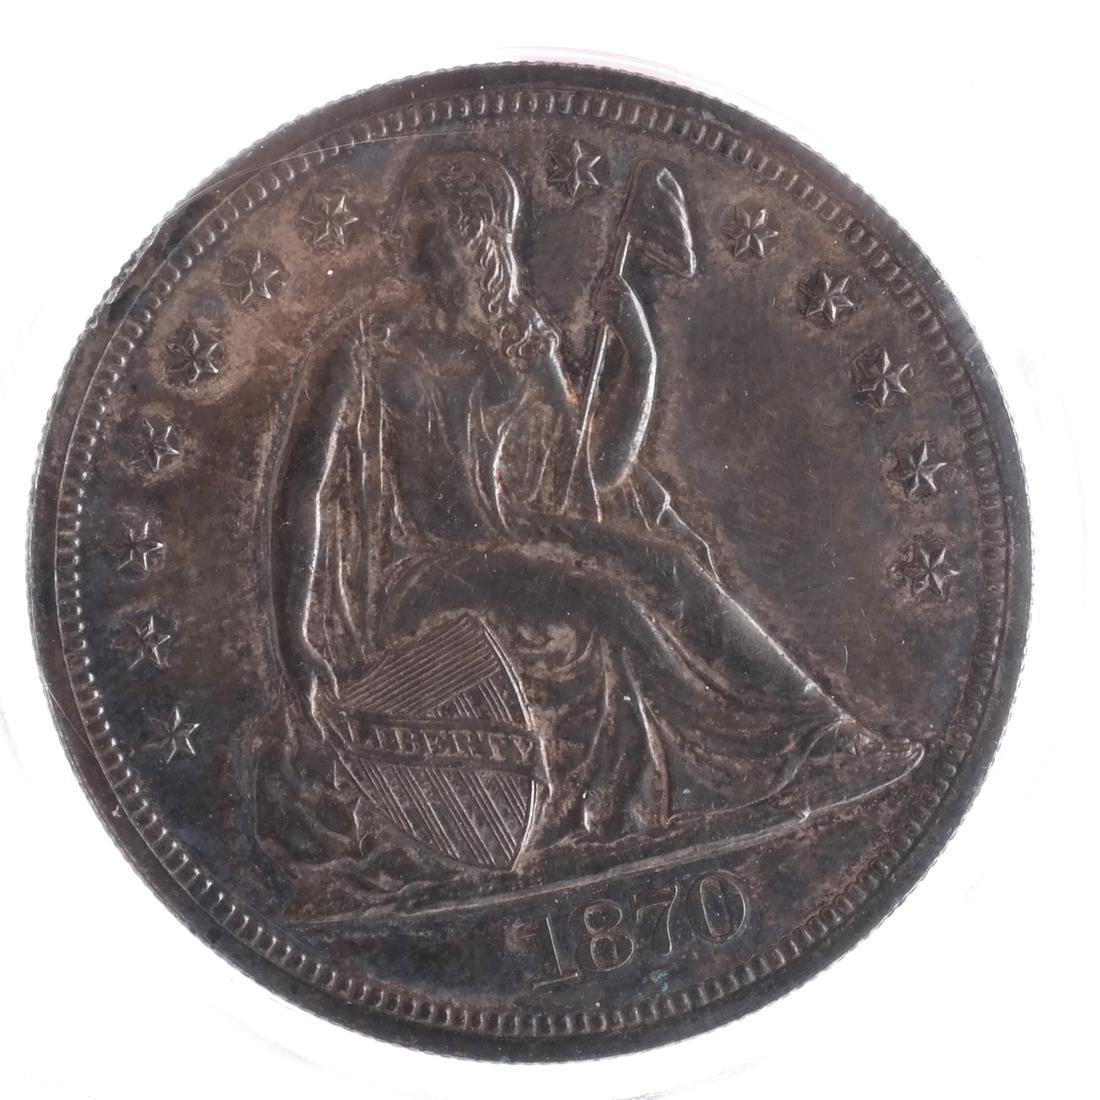 1870 Liberty Seated Dollar MS 63/64